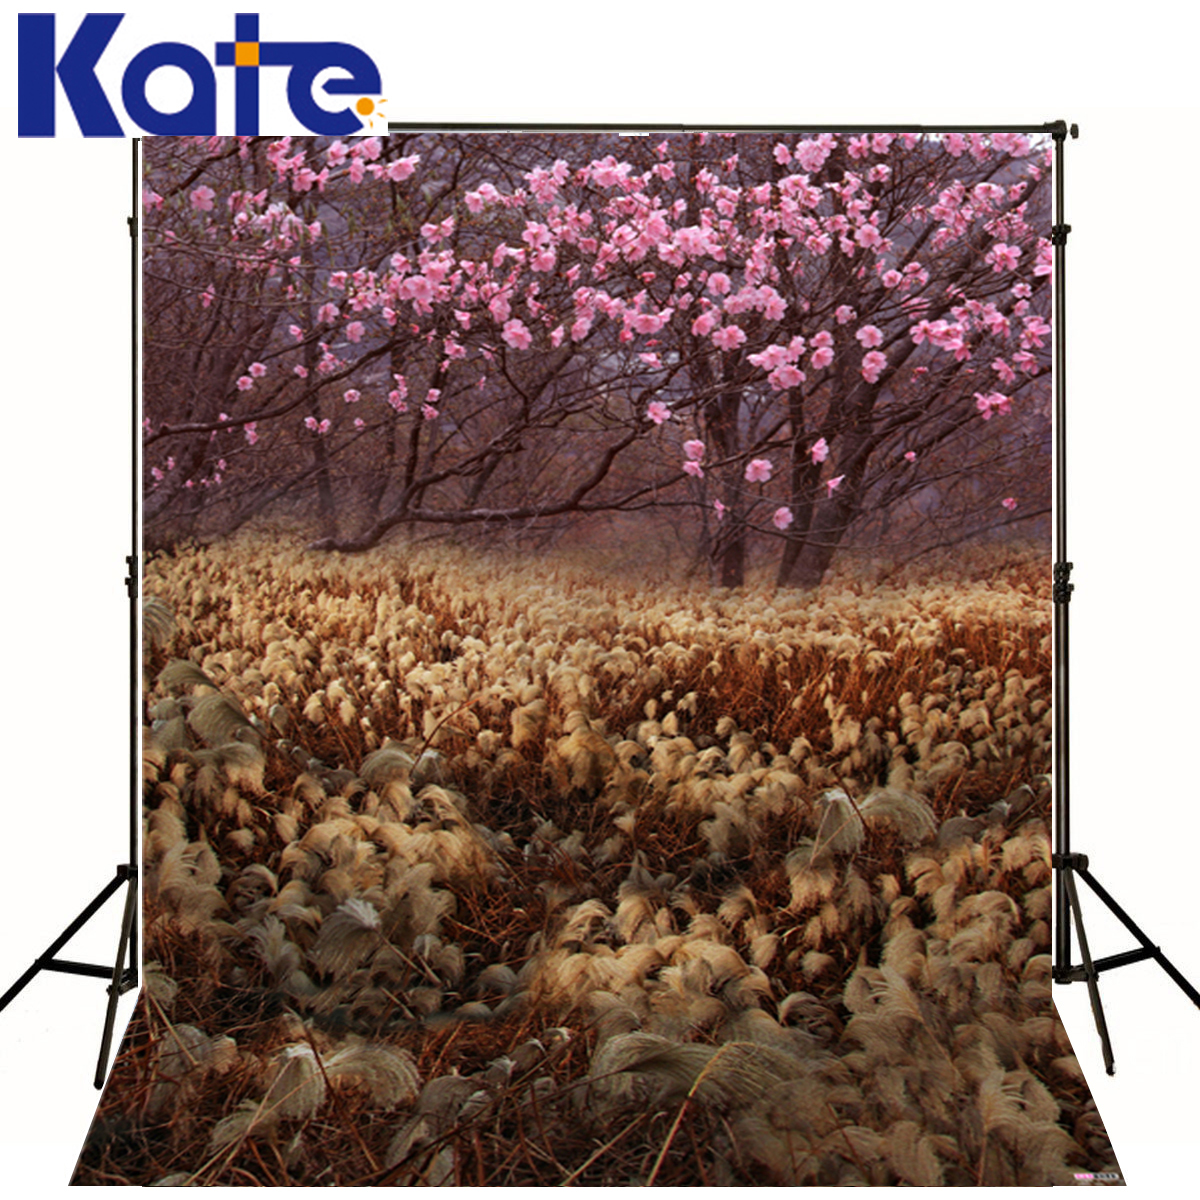 KATE Newborn Backdrop Pink Flowers Trees Baby Photography Backdrops Scenery Background Spring Backdrop for Photo Shoot Studio<br>